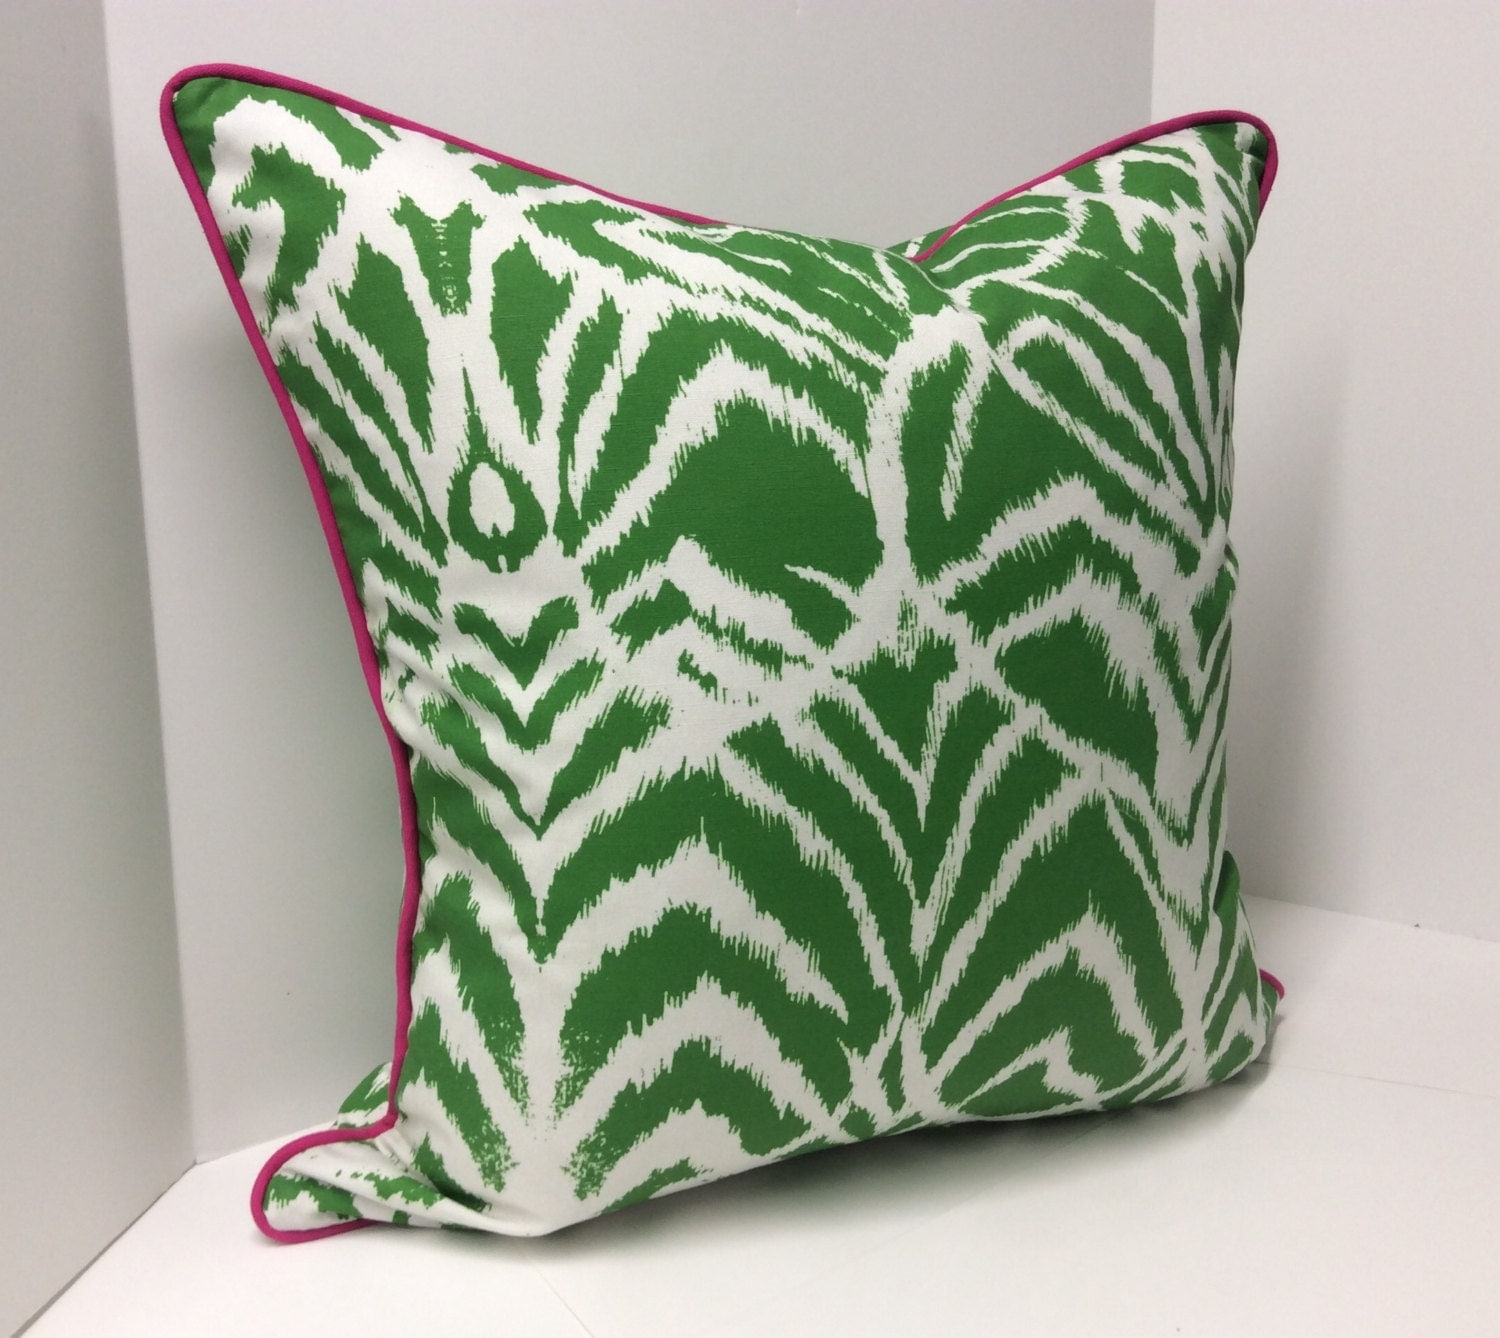 Kelly Green Wild Ikat Decorative Pillow Cover Design